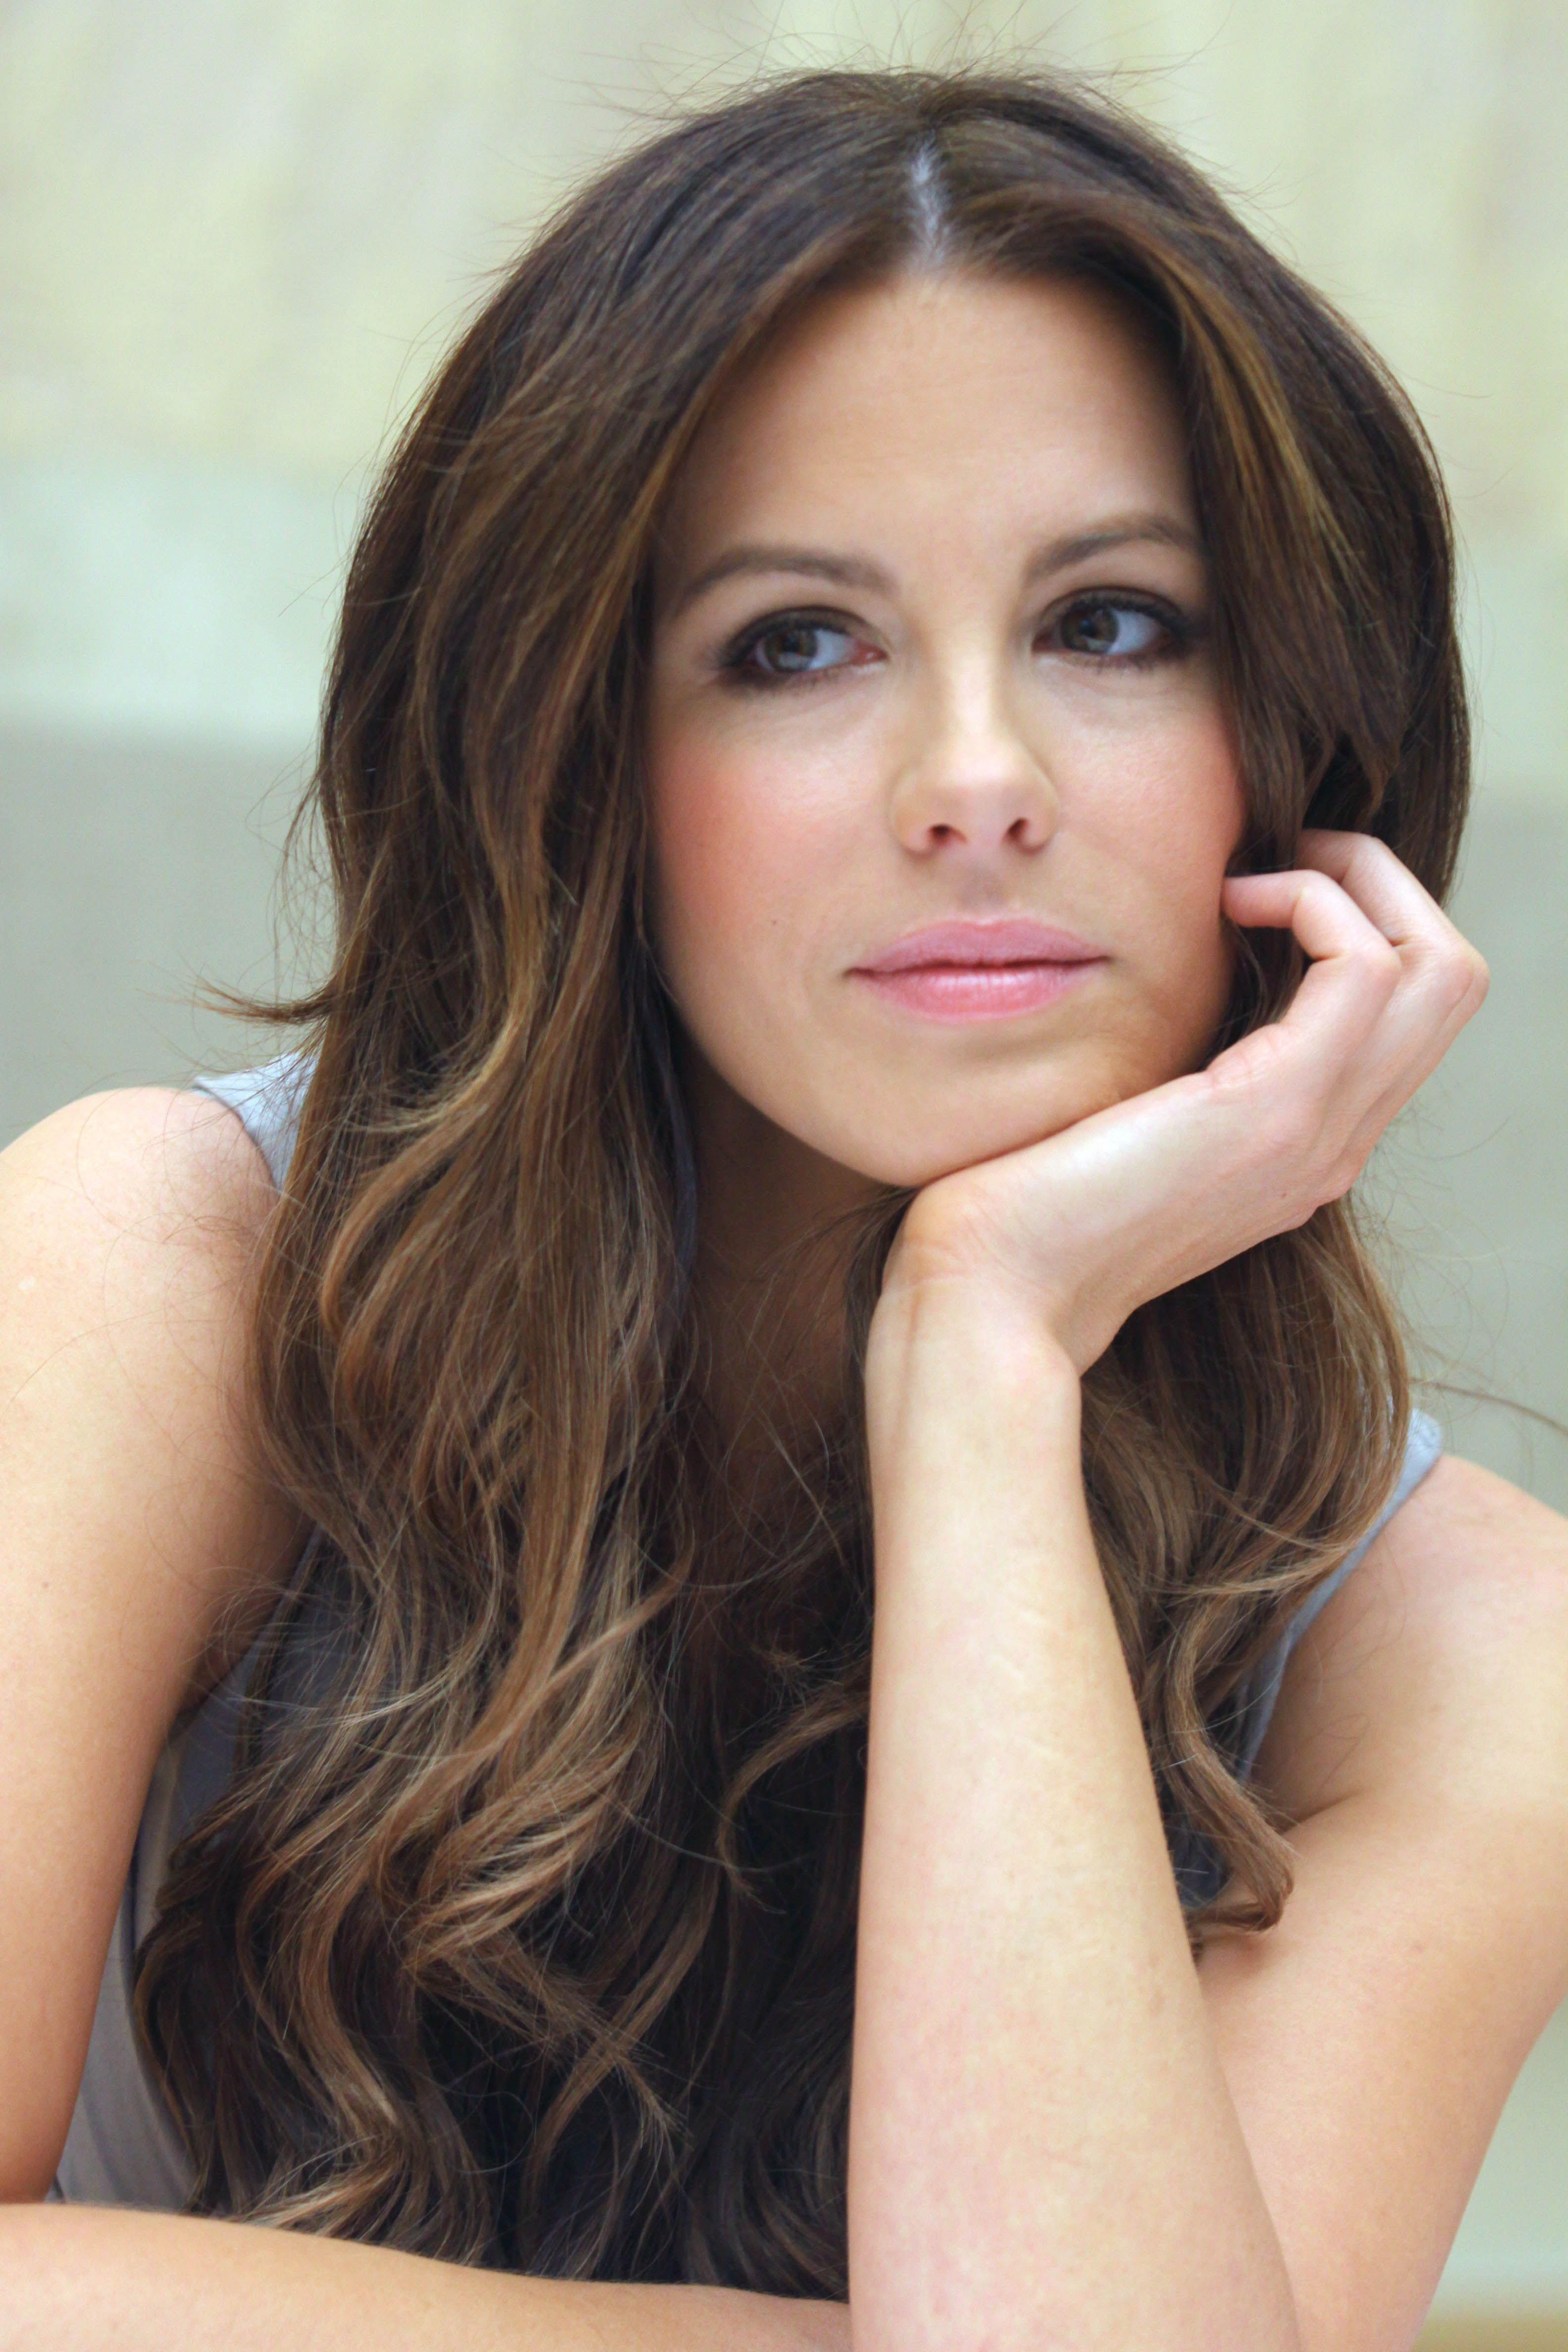 kate beckinsale | my style | pinterest | kate beckinsale and hd picture